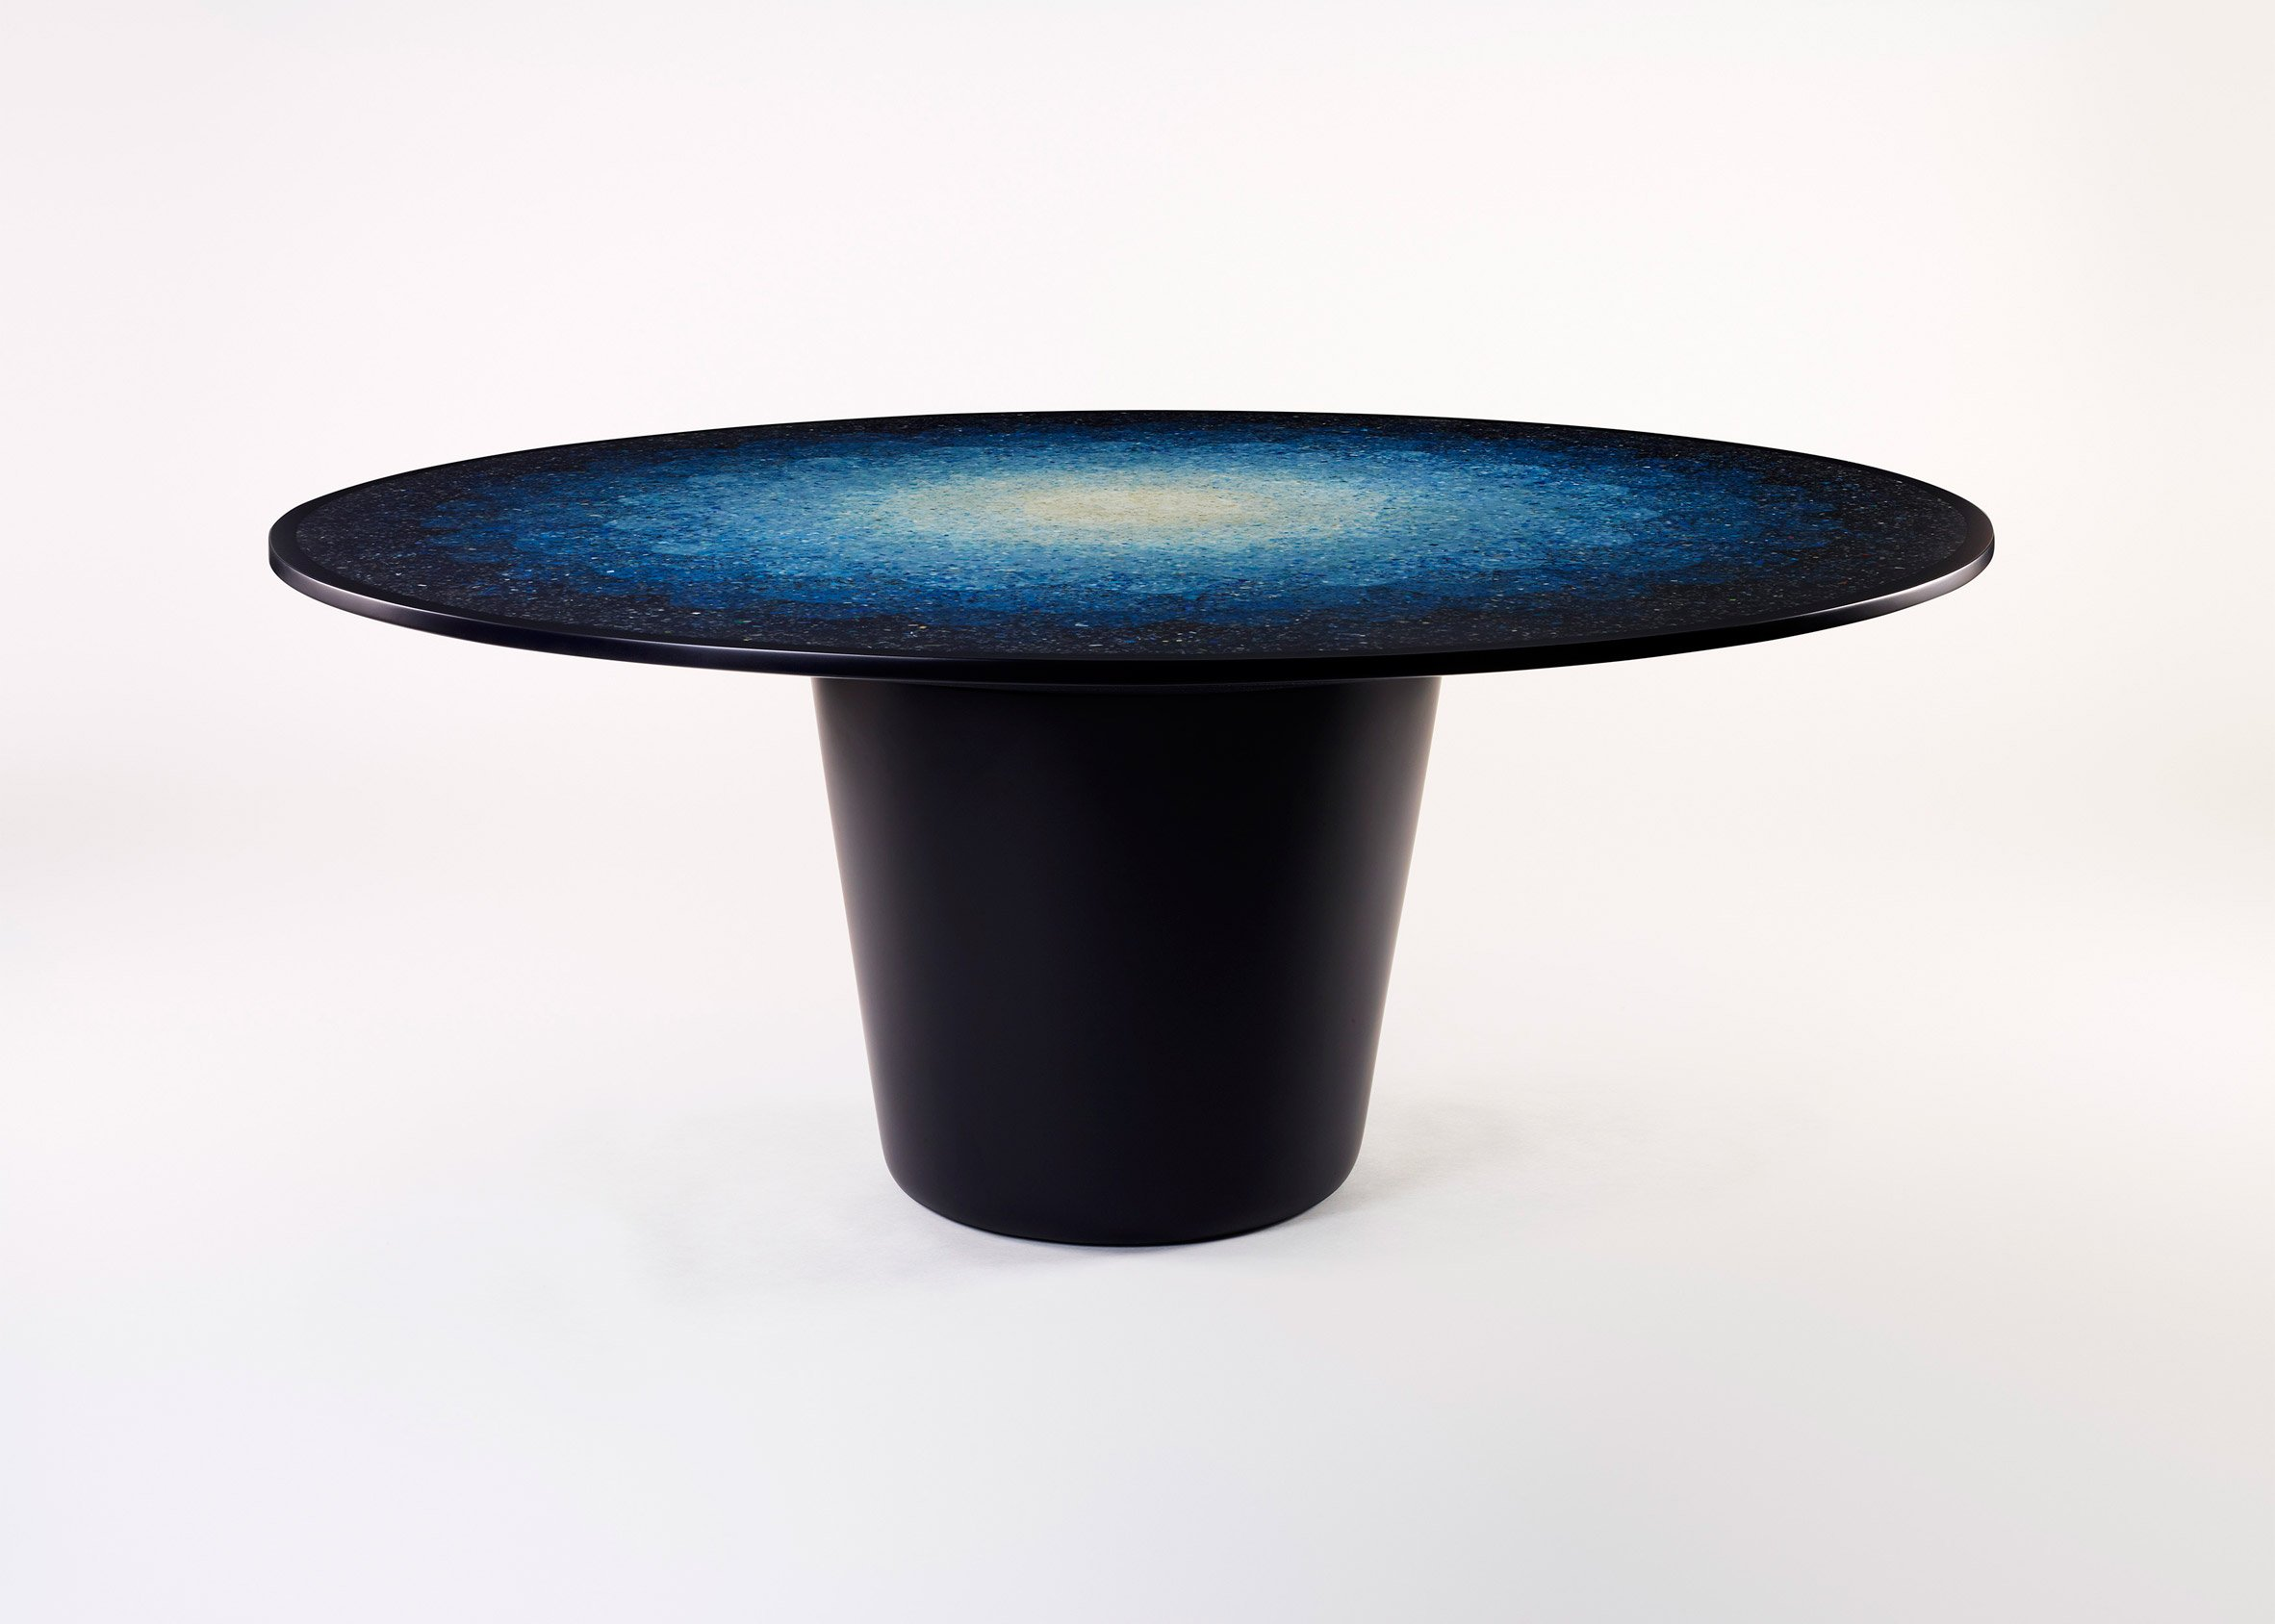 LDB: Ocean terrazzo table by Brodie Neill for LDB